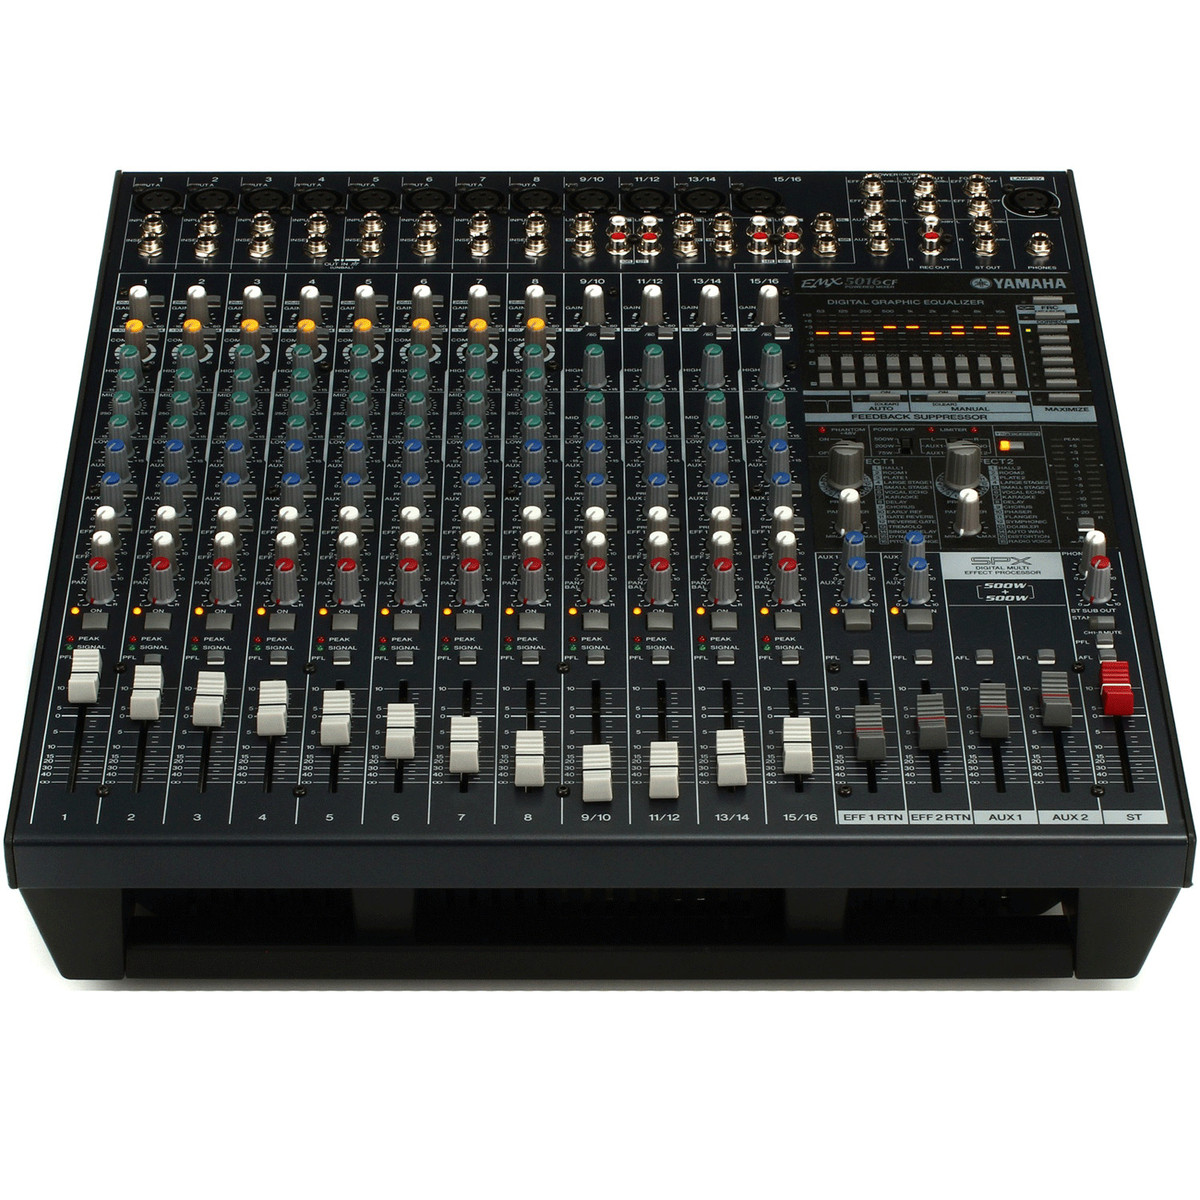 Yamaha emx5016cf 500w 500w stereo powered mixer at for Yamaha power amp mixer